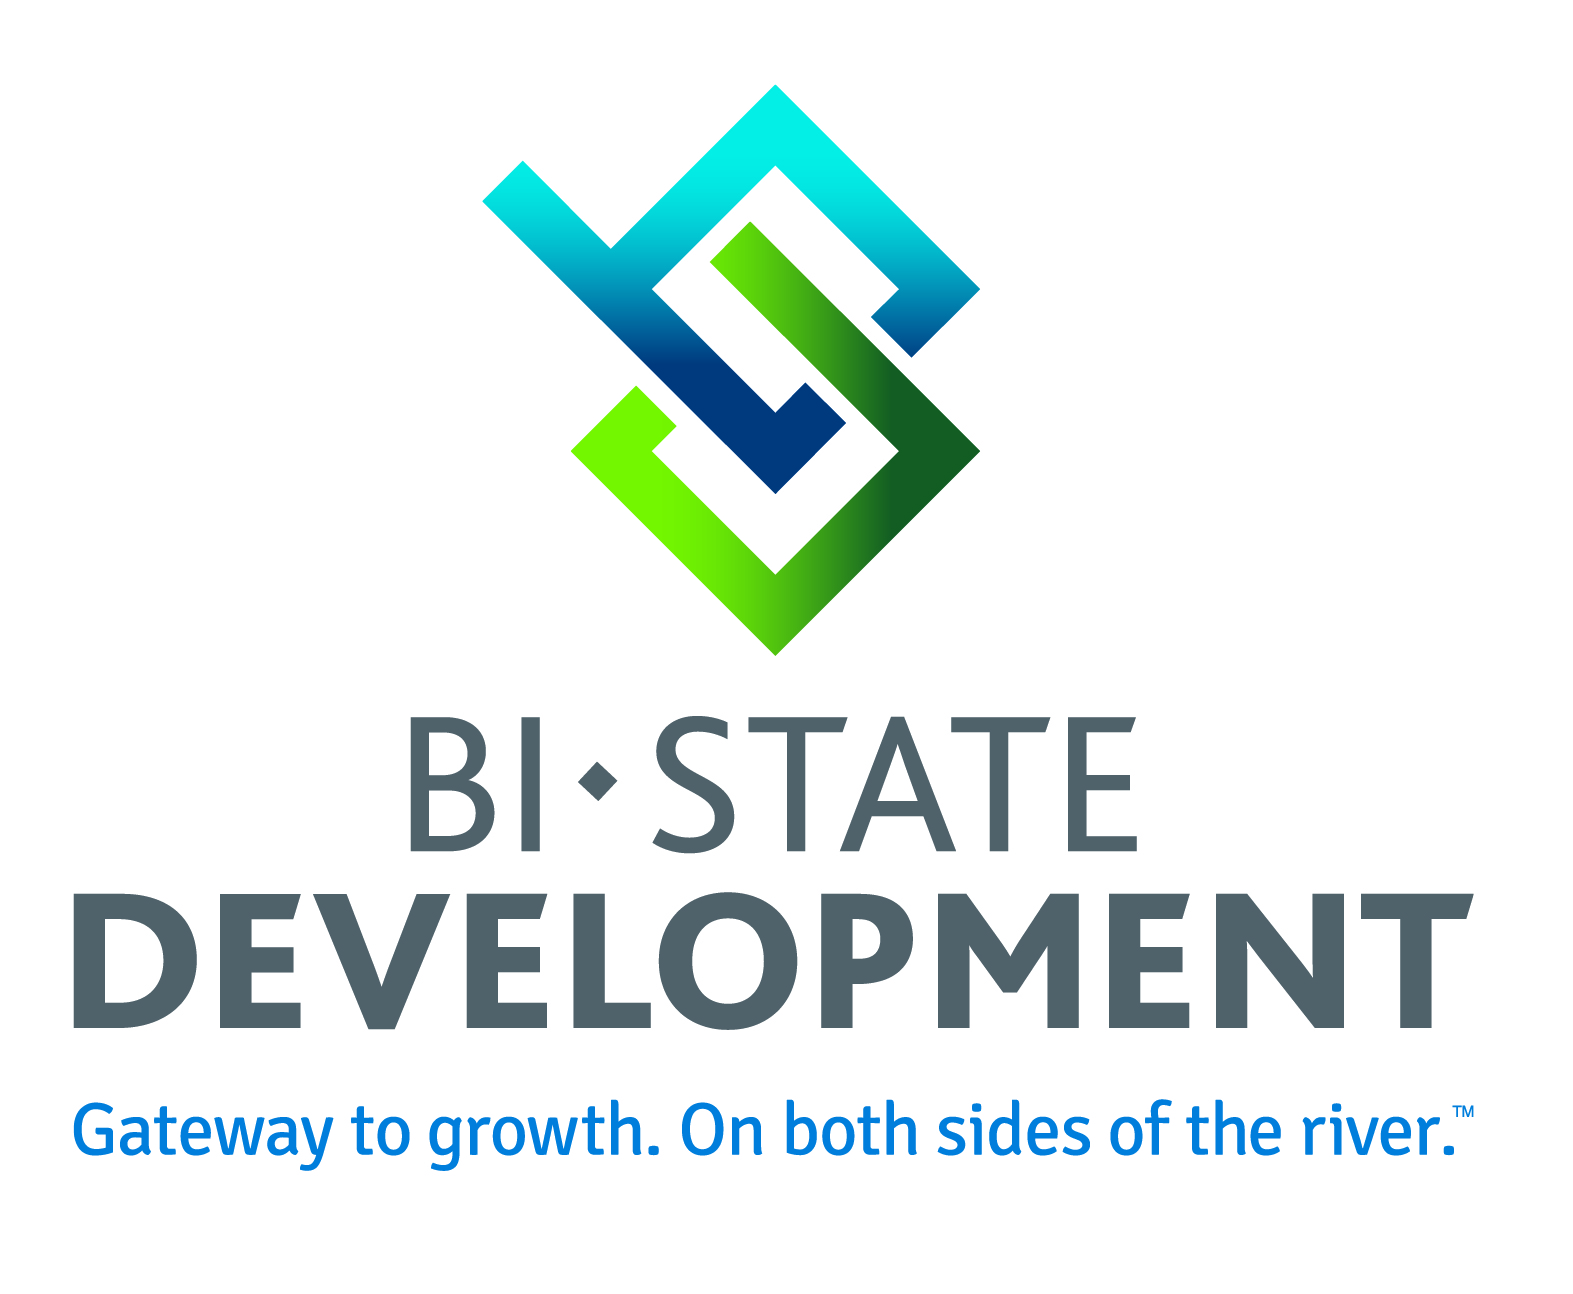 Bi-State Development Reaffirms its Unique Role as an Economic Development Engine for the Region With an Updated Look